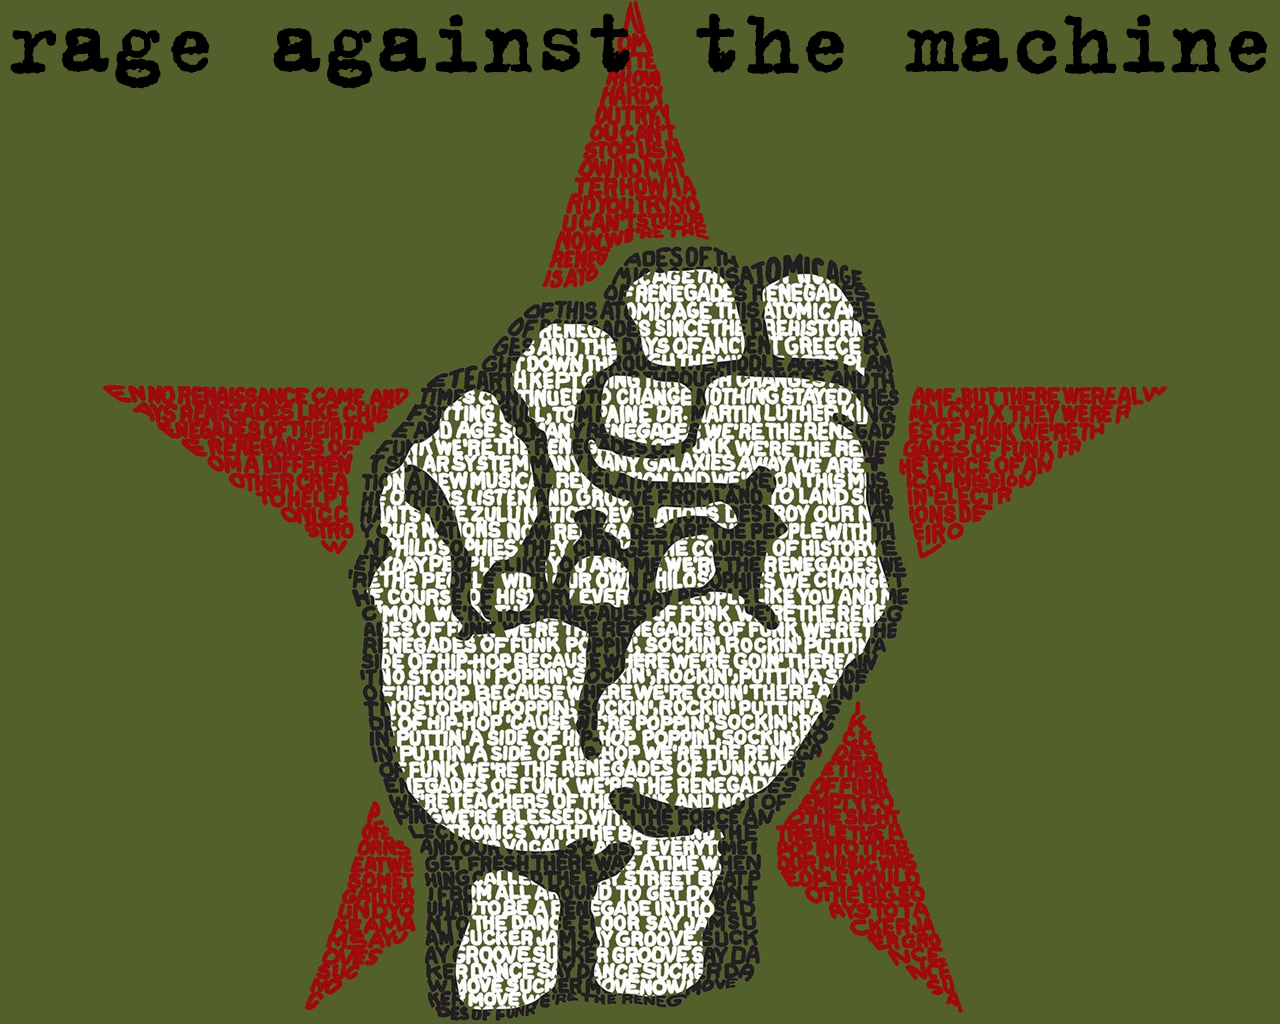 rahe against the machine